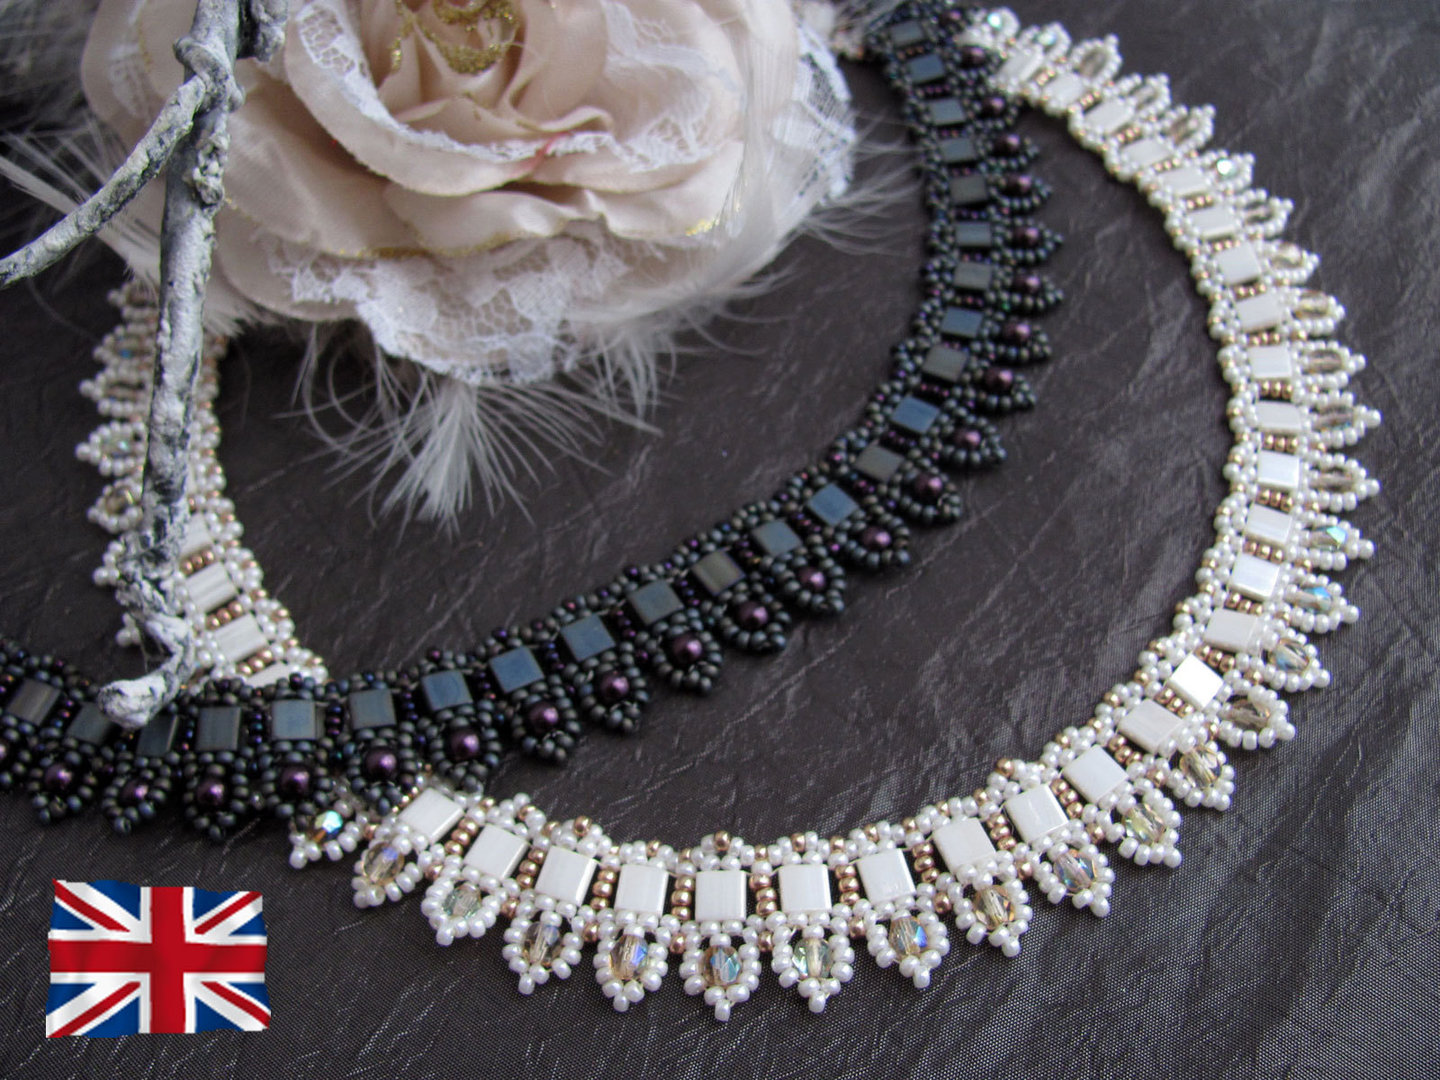 Tutorial for necklace 'To The Point' - English